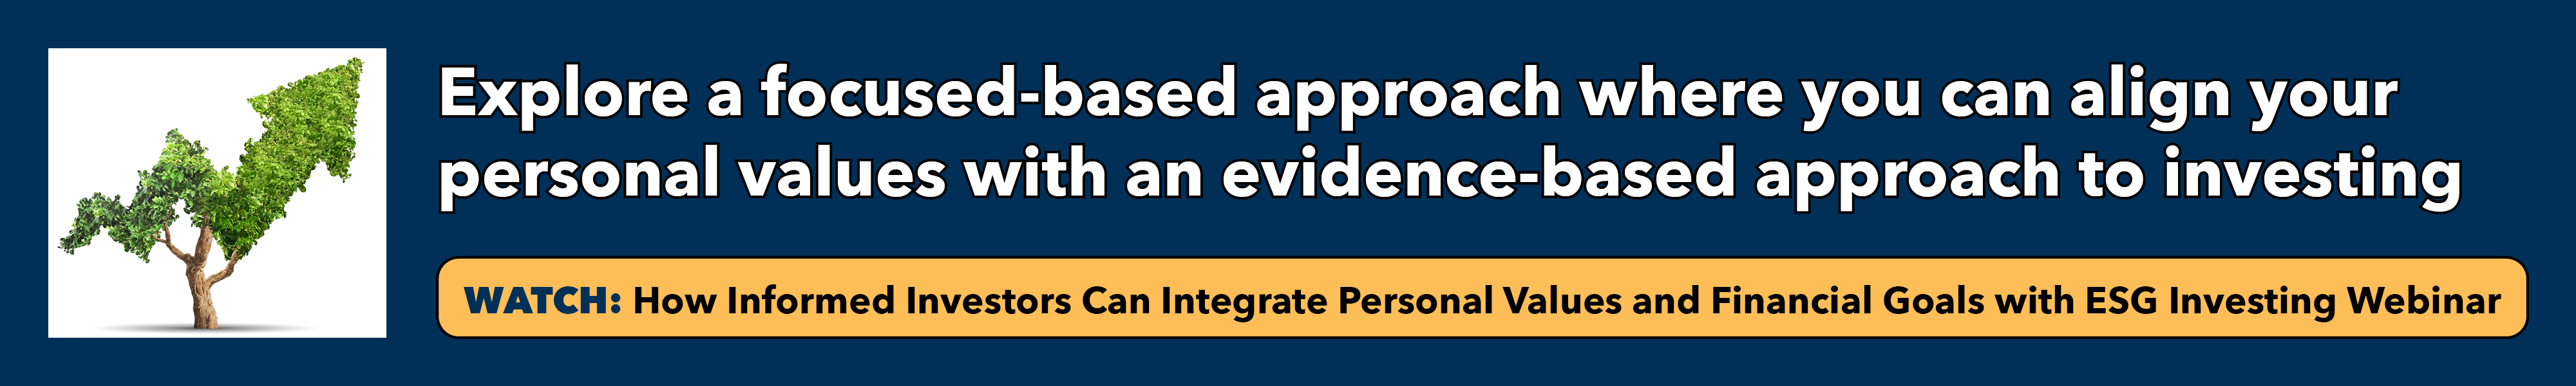 Watch webinar on how informed investors can integrate personal values and financial goals